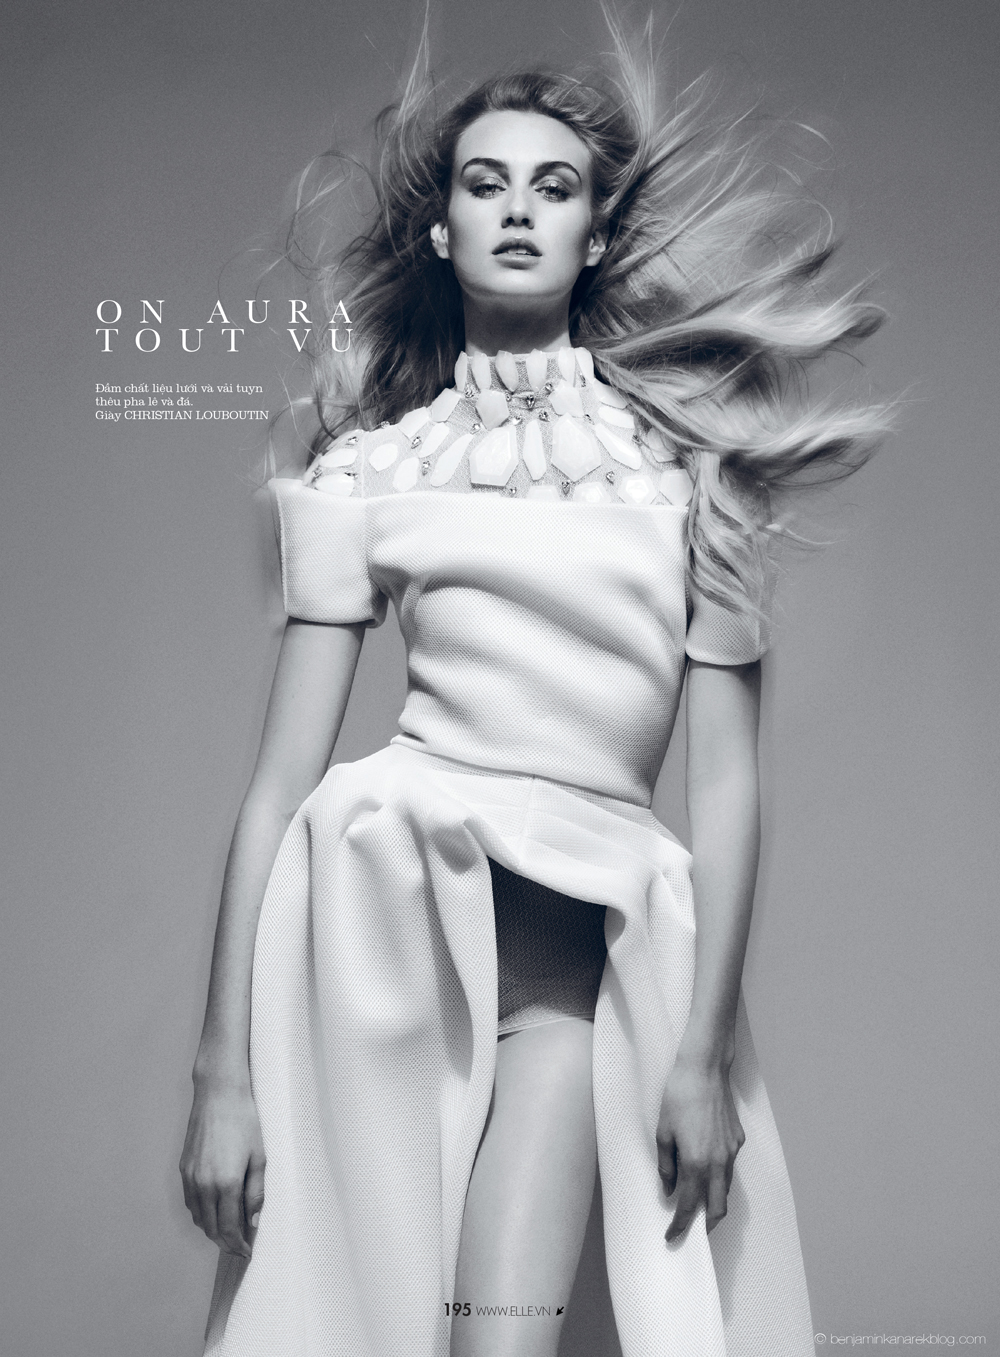 Dauphine McKee in On Aura Tout Vu © Benjamin Kanarek for ELLE Vietnam April 2014